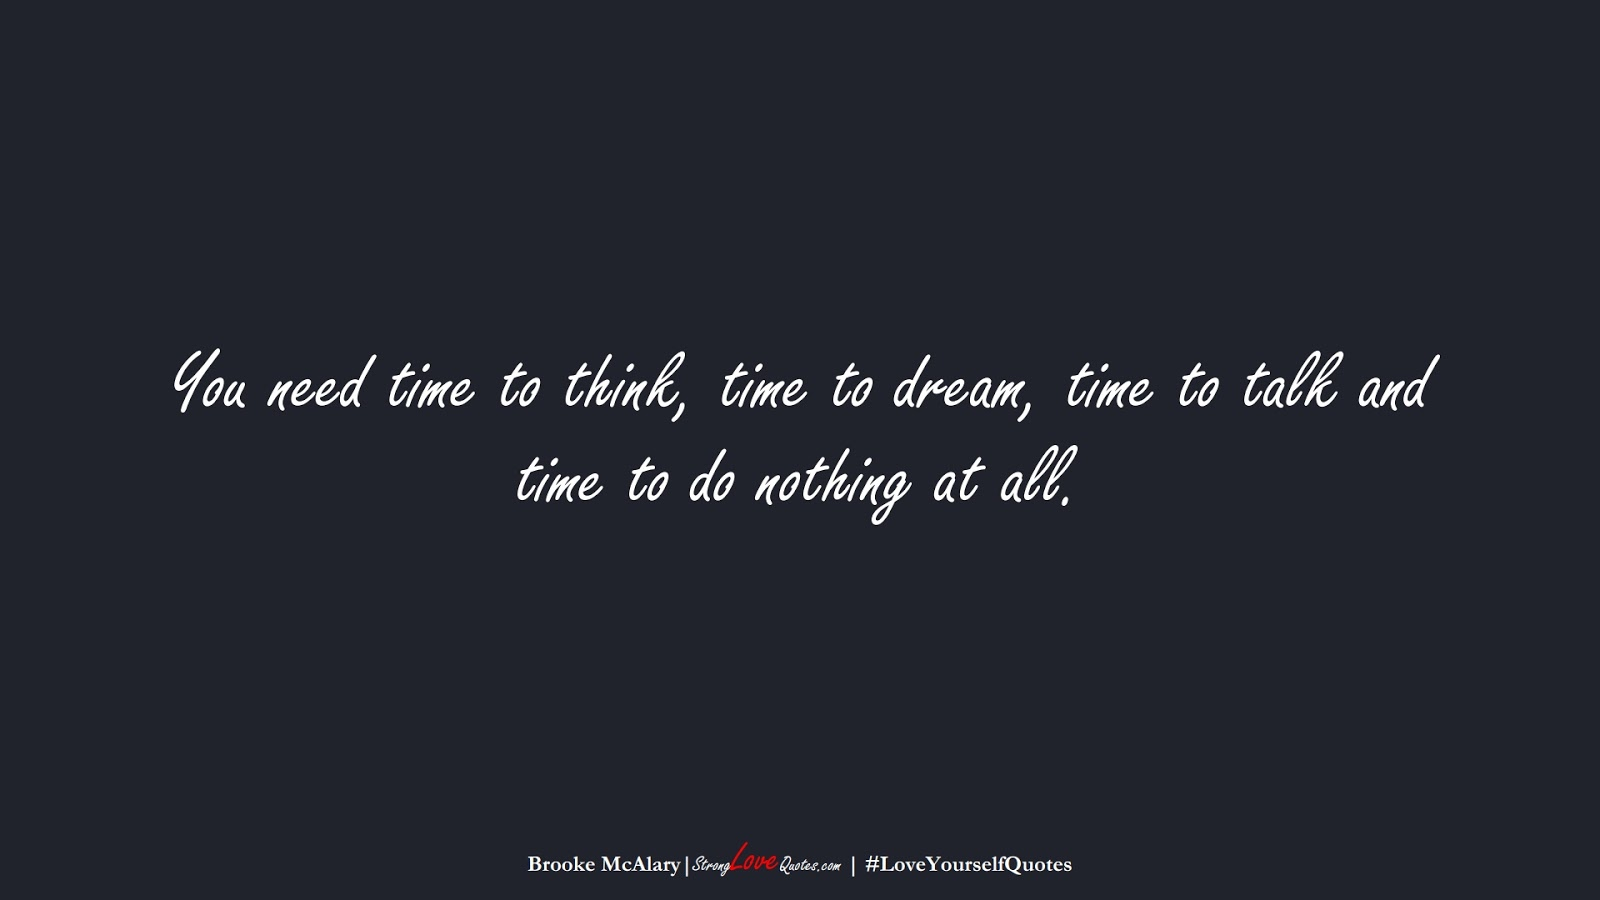 You need time to think, time to dream, time to talk and time to do nothing at all. (Brooke McAlary);  #LoveYourselfQuotes